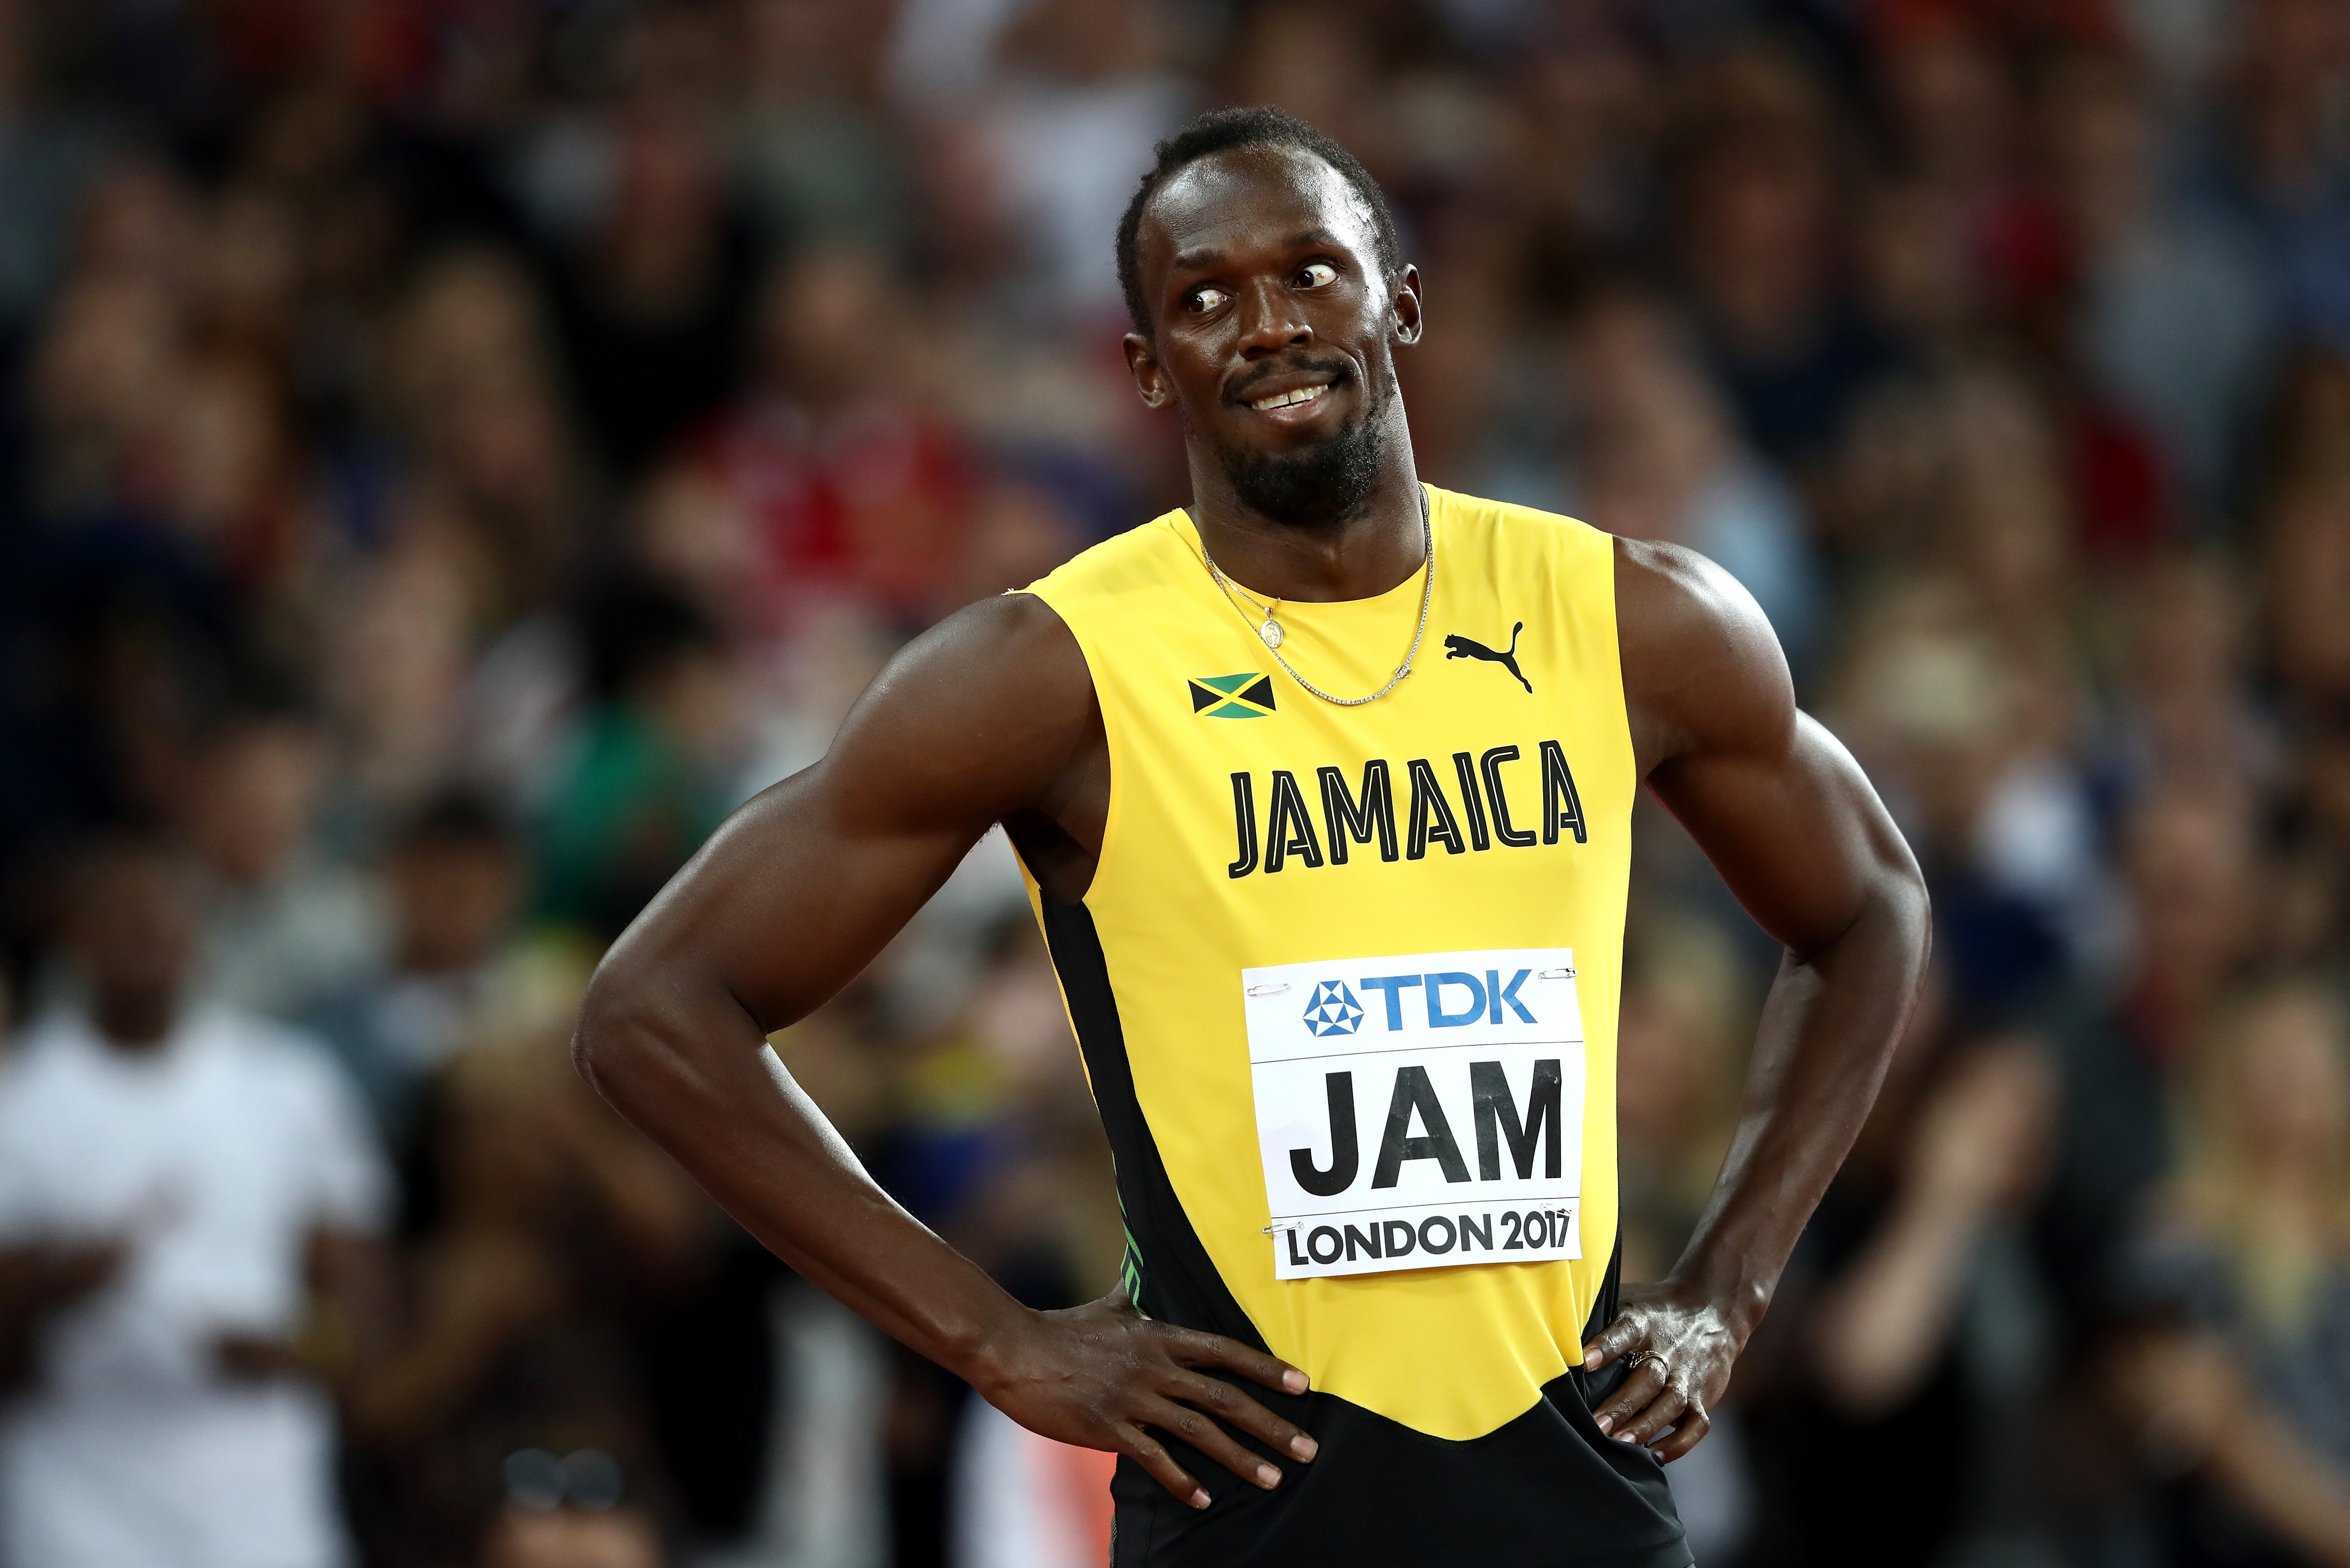 Usain Bolt during the Men's 4x100 Relay final at the IAAF World Athletics Championships London on Aug. 12, 2017 | Photo: Getty Images